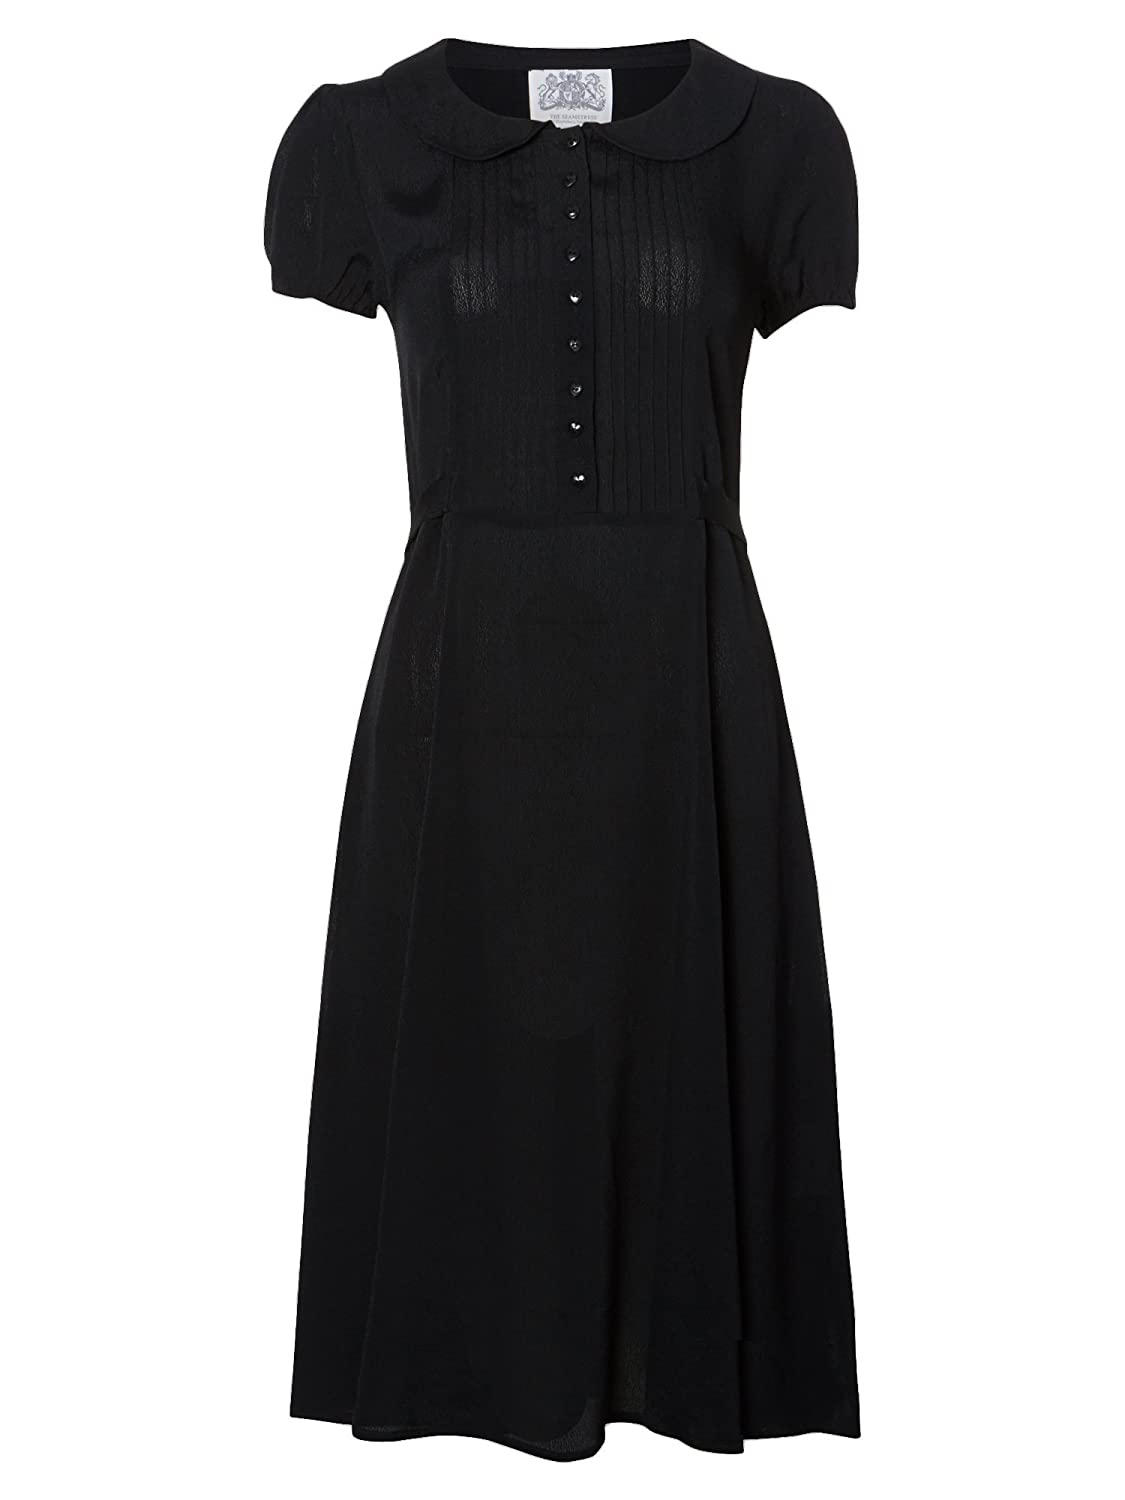 500 Vintage Style Dresses for Sale | Vintage Inspired Dresses 1940s Authentic Vintage Inspired Dorothy Dress in Black £79.00 AT vintagedancer.com